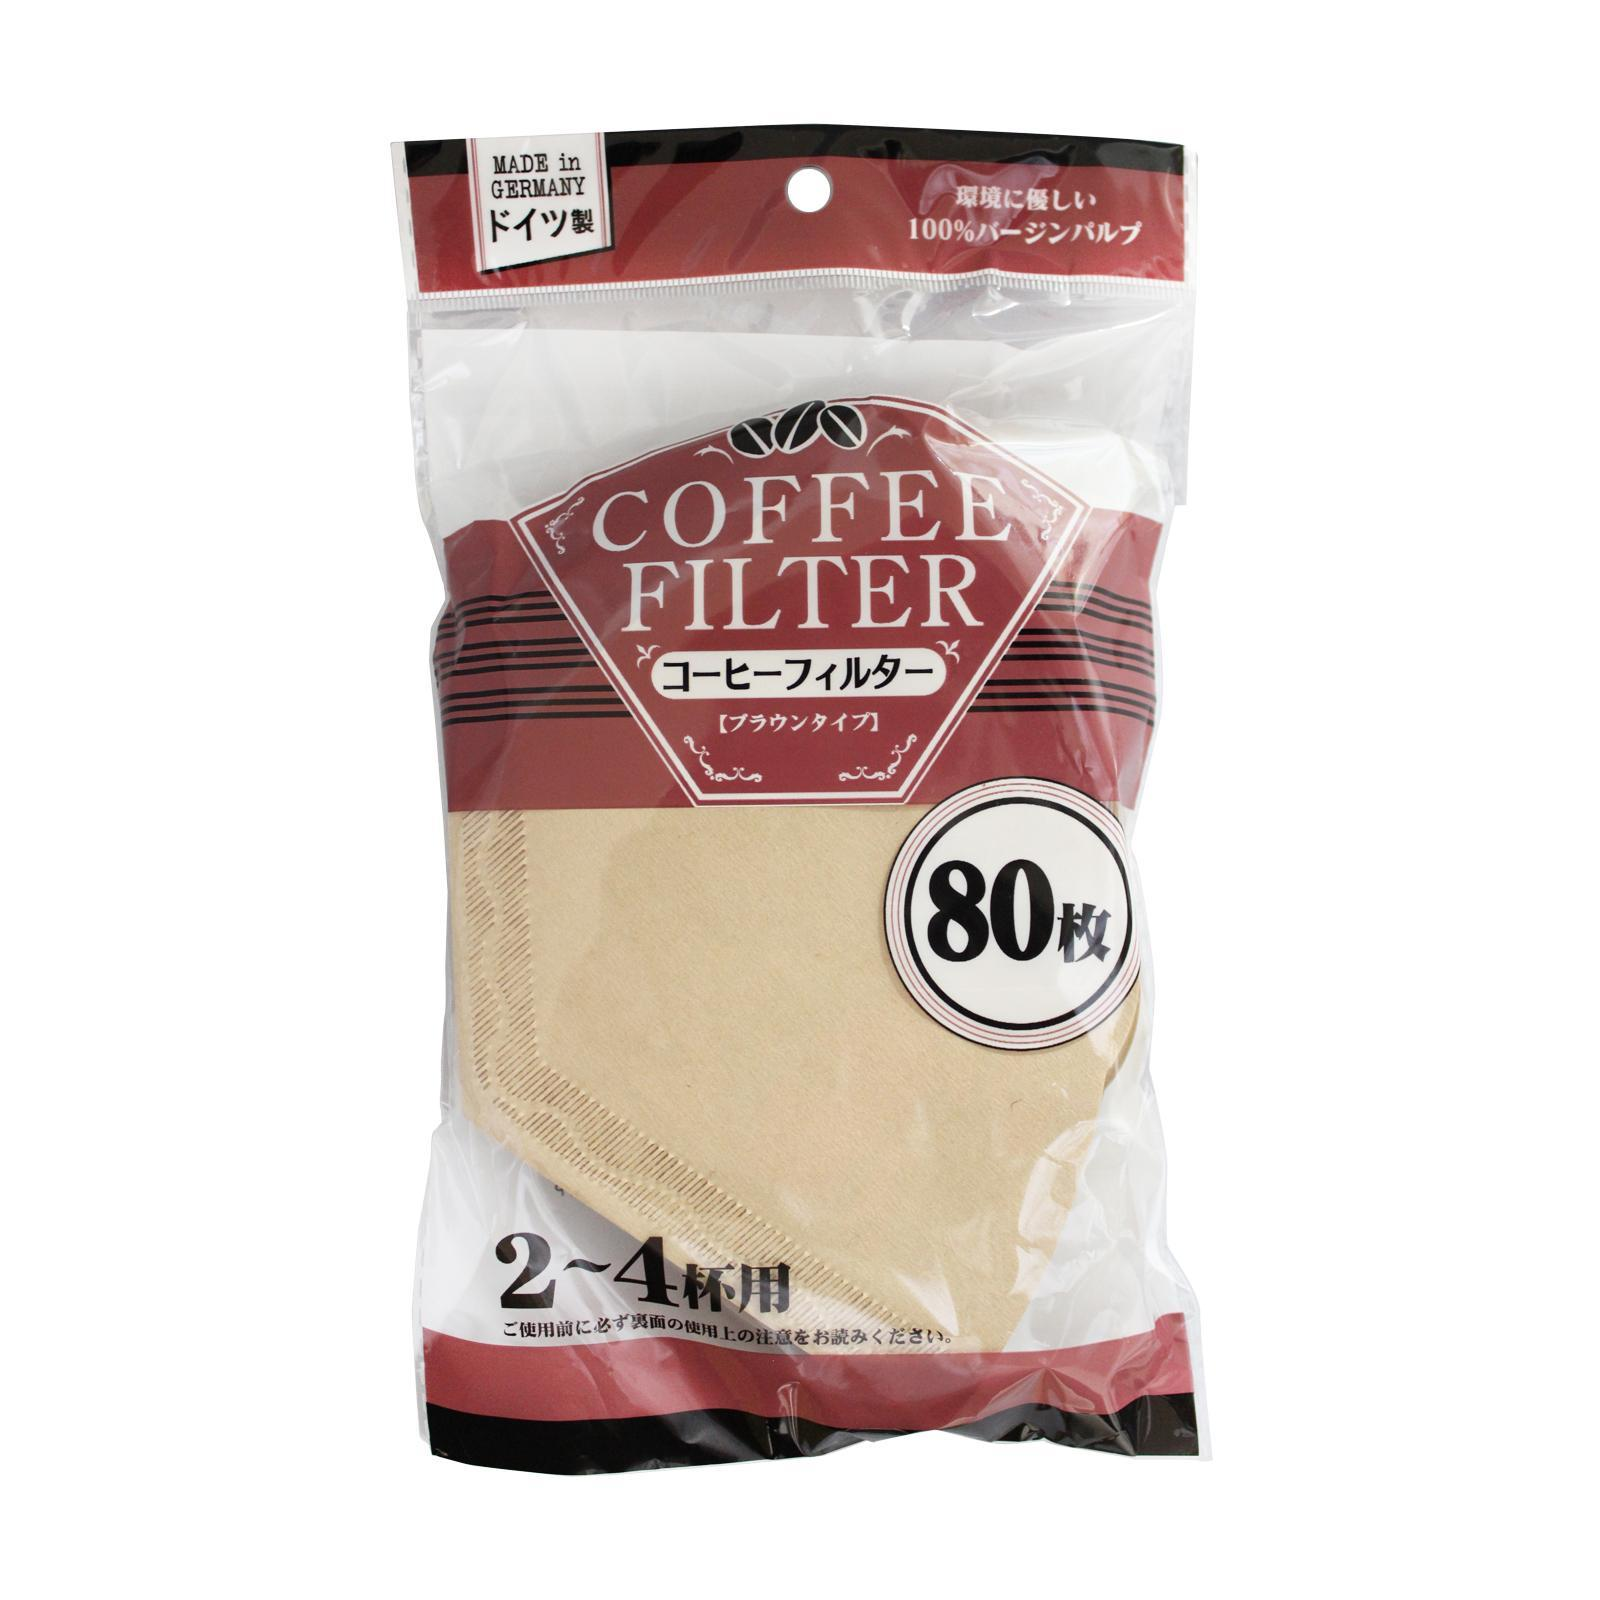 Maruki Disposable Paper Coffee Filters -Unbleached Pack Of 80 (2-4 Cups)